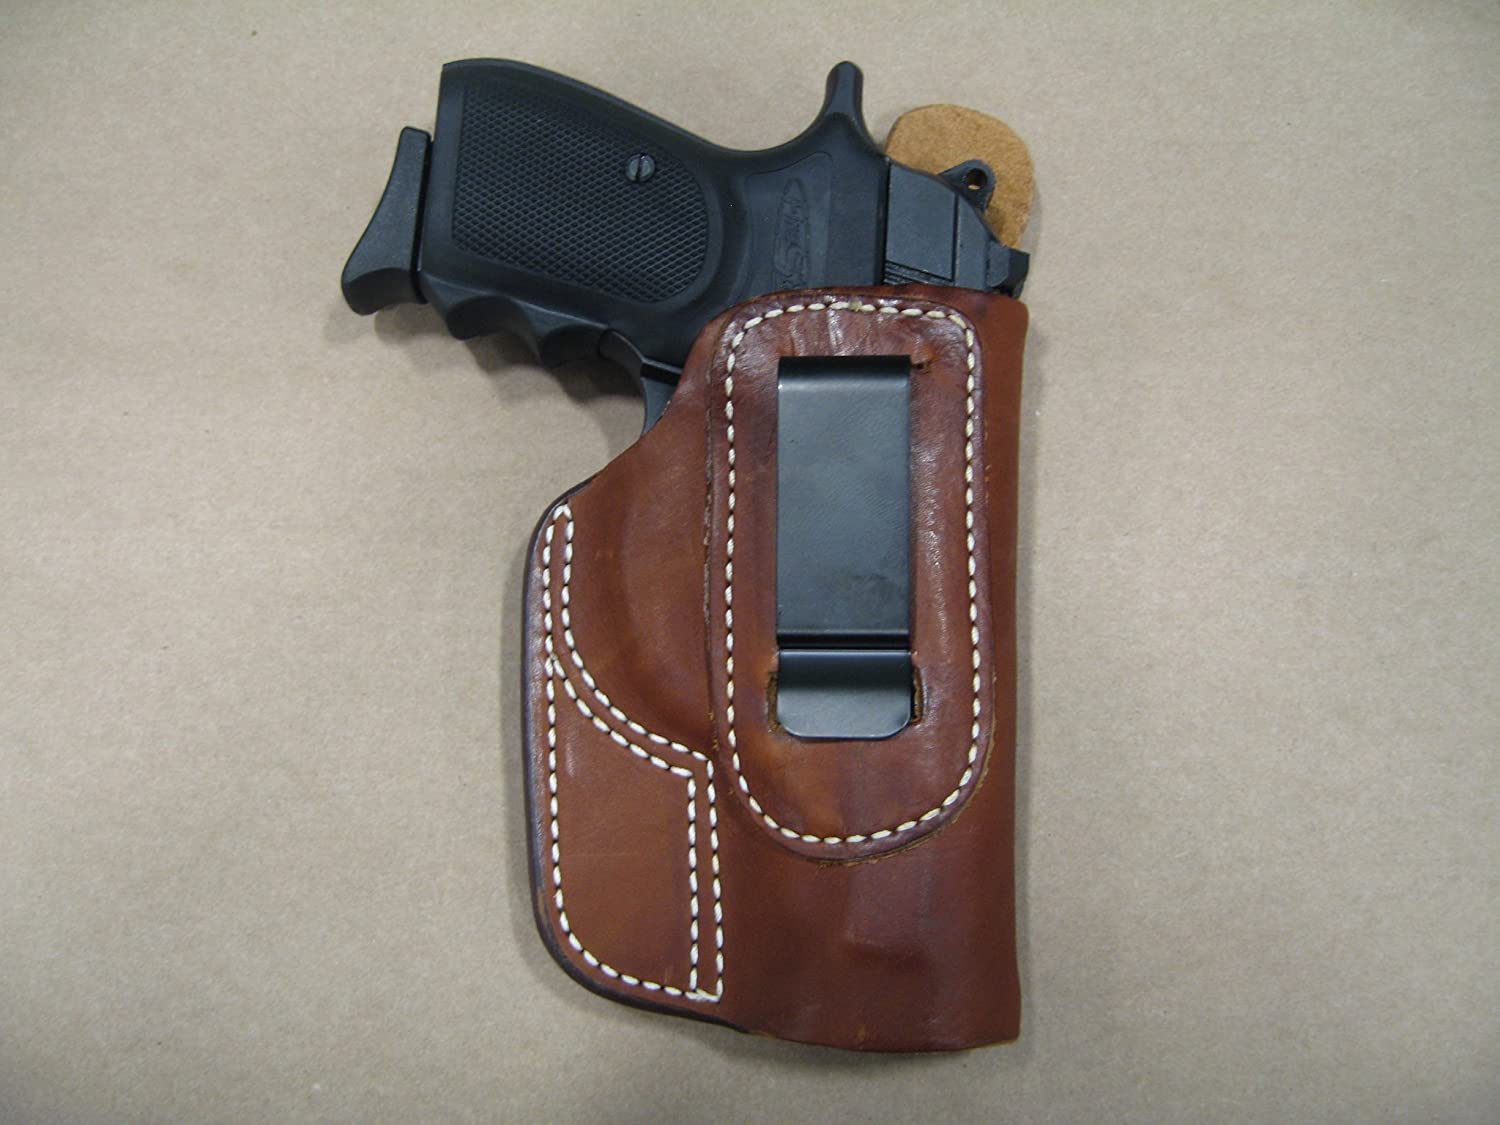 Browning BDA .380 IWB Molded Leather Inside Waist Concealed Carry Holster TAN RH